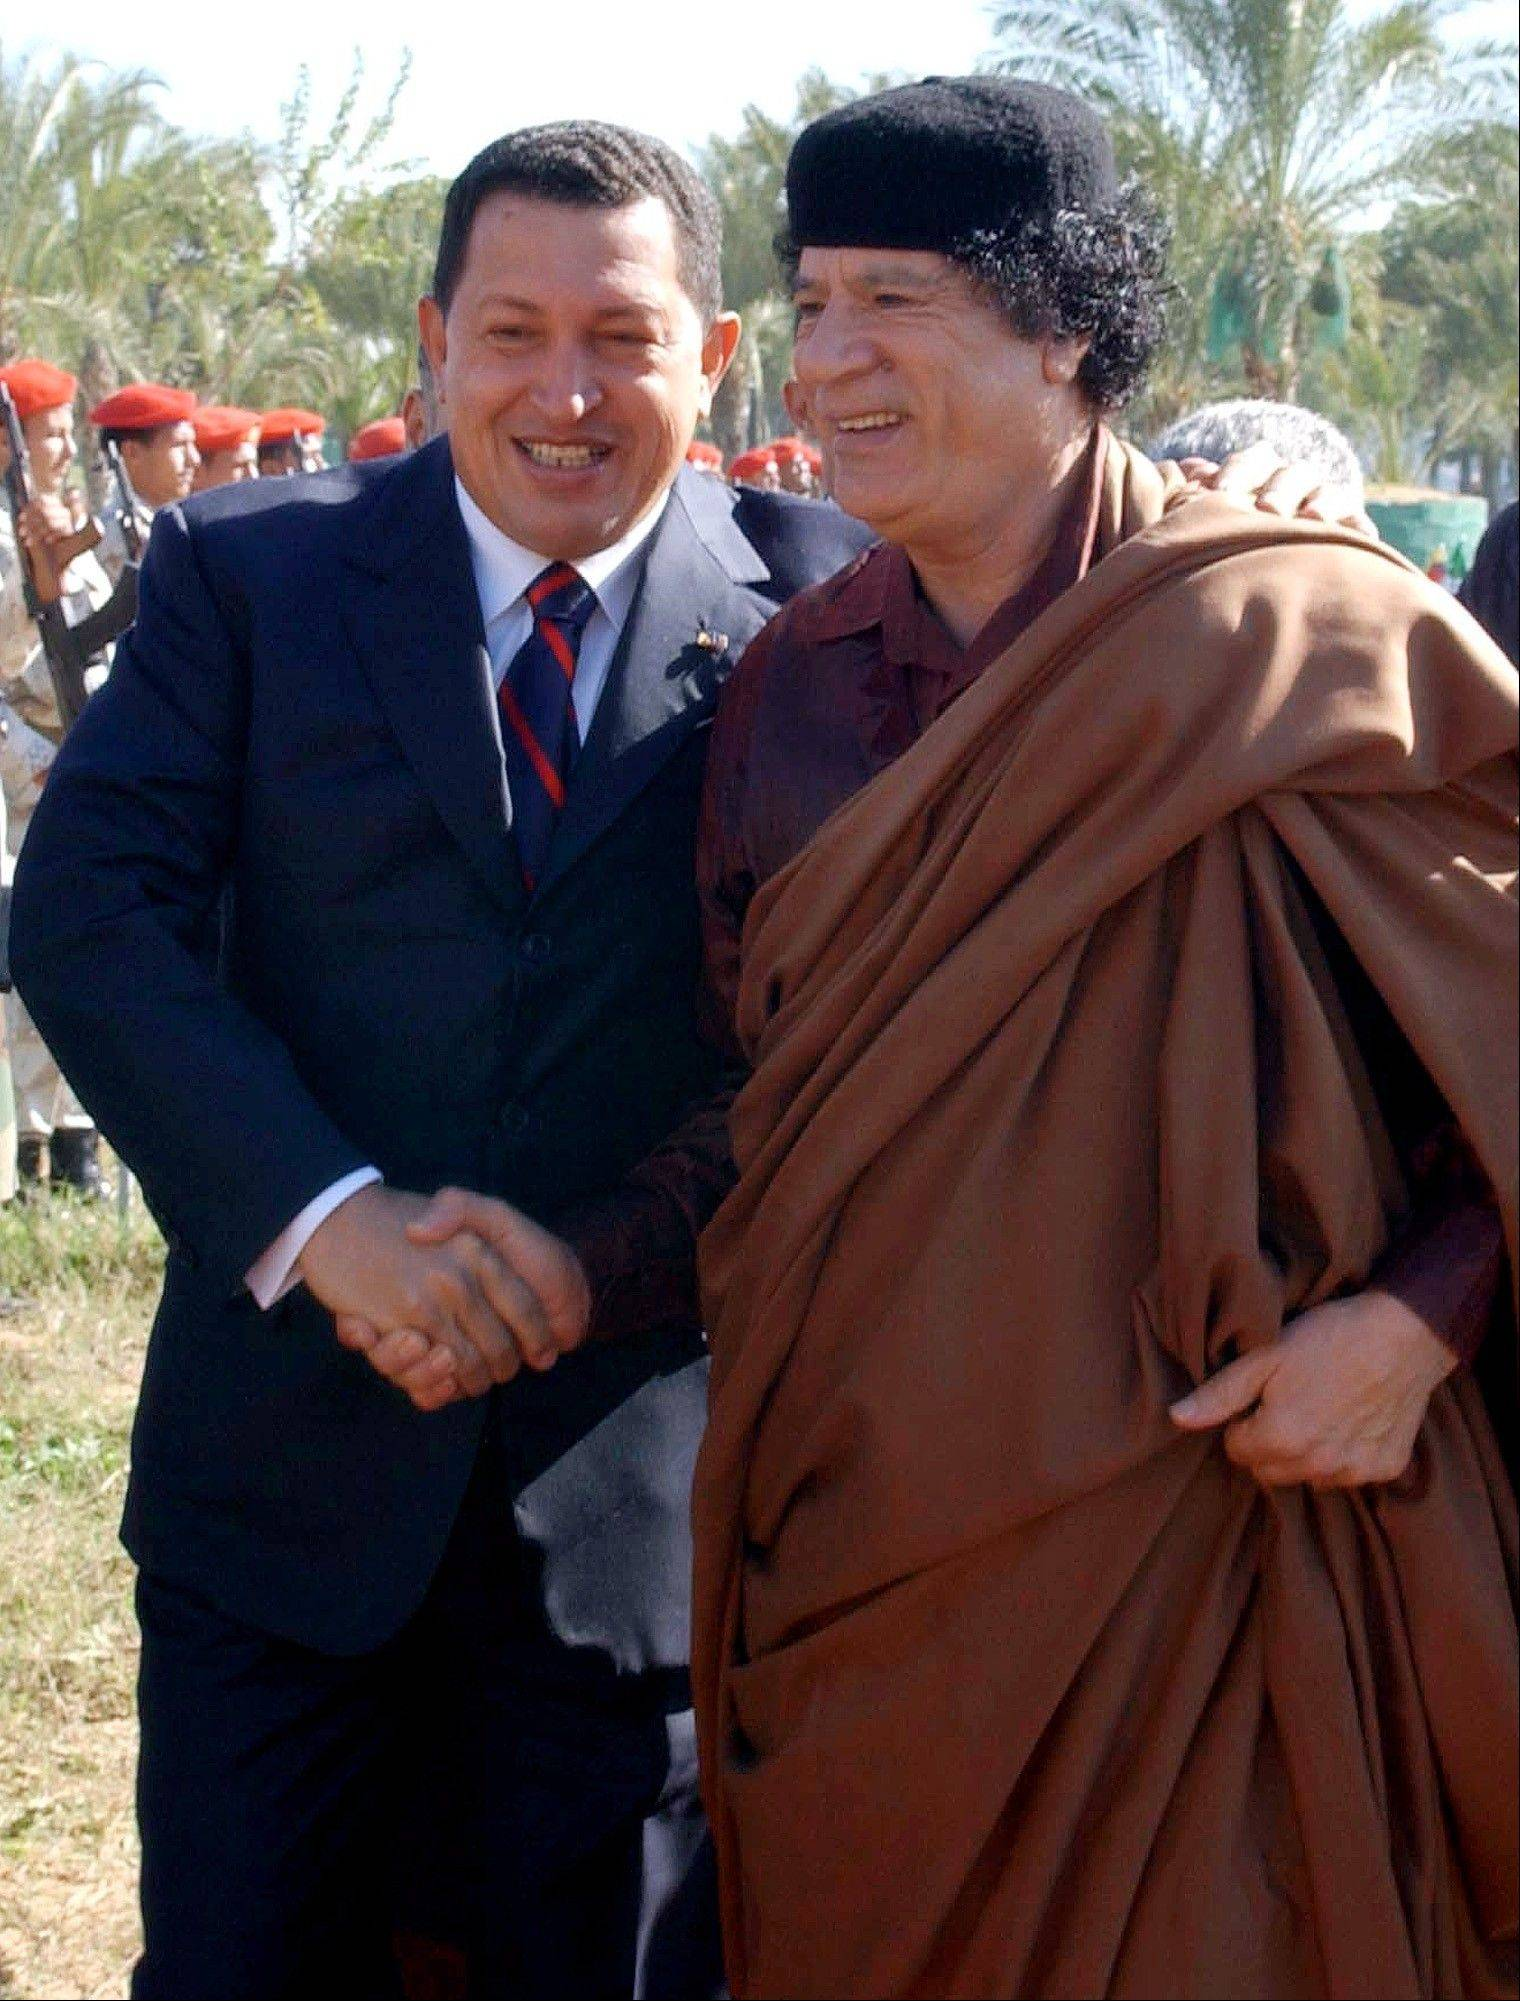 In this Nov. 24, 2004 file photo released by Miraflores Presidential Press Office, Libyan leader Moammar Gadhafi, right, greets Venezuela's President Hugo Chavez in Tripoli, Libya.